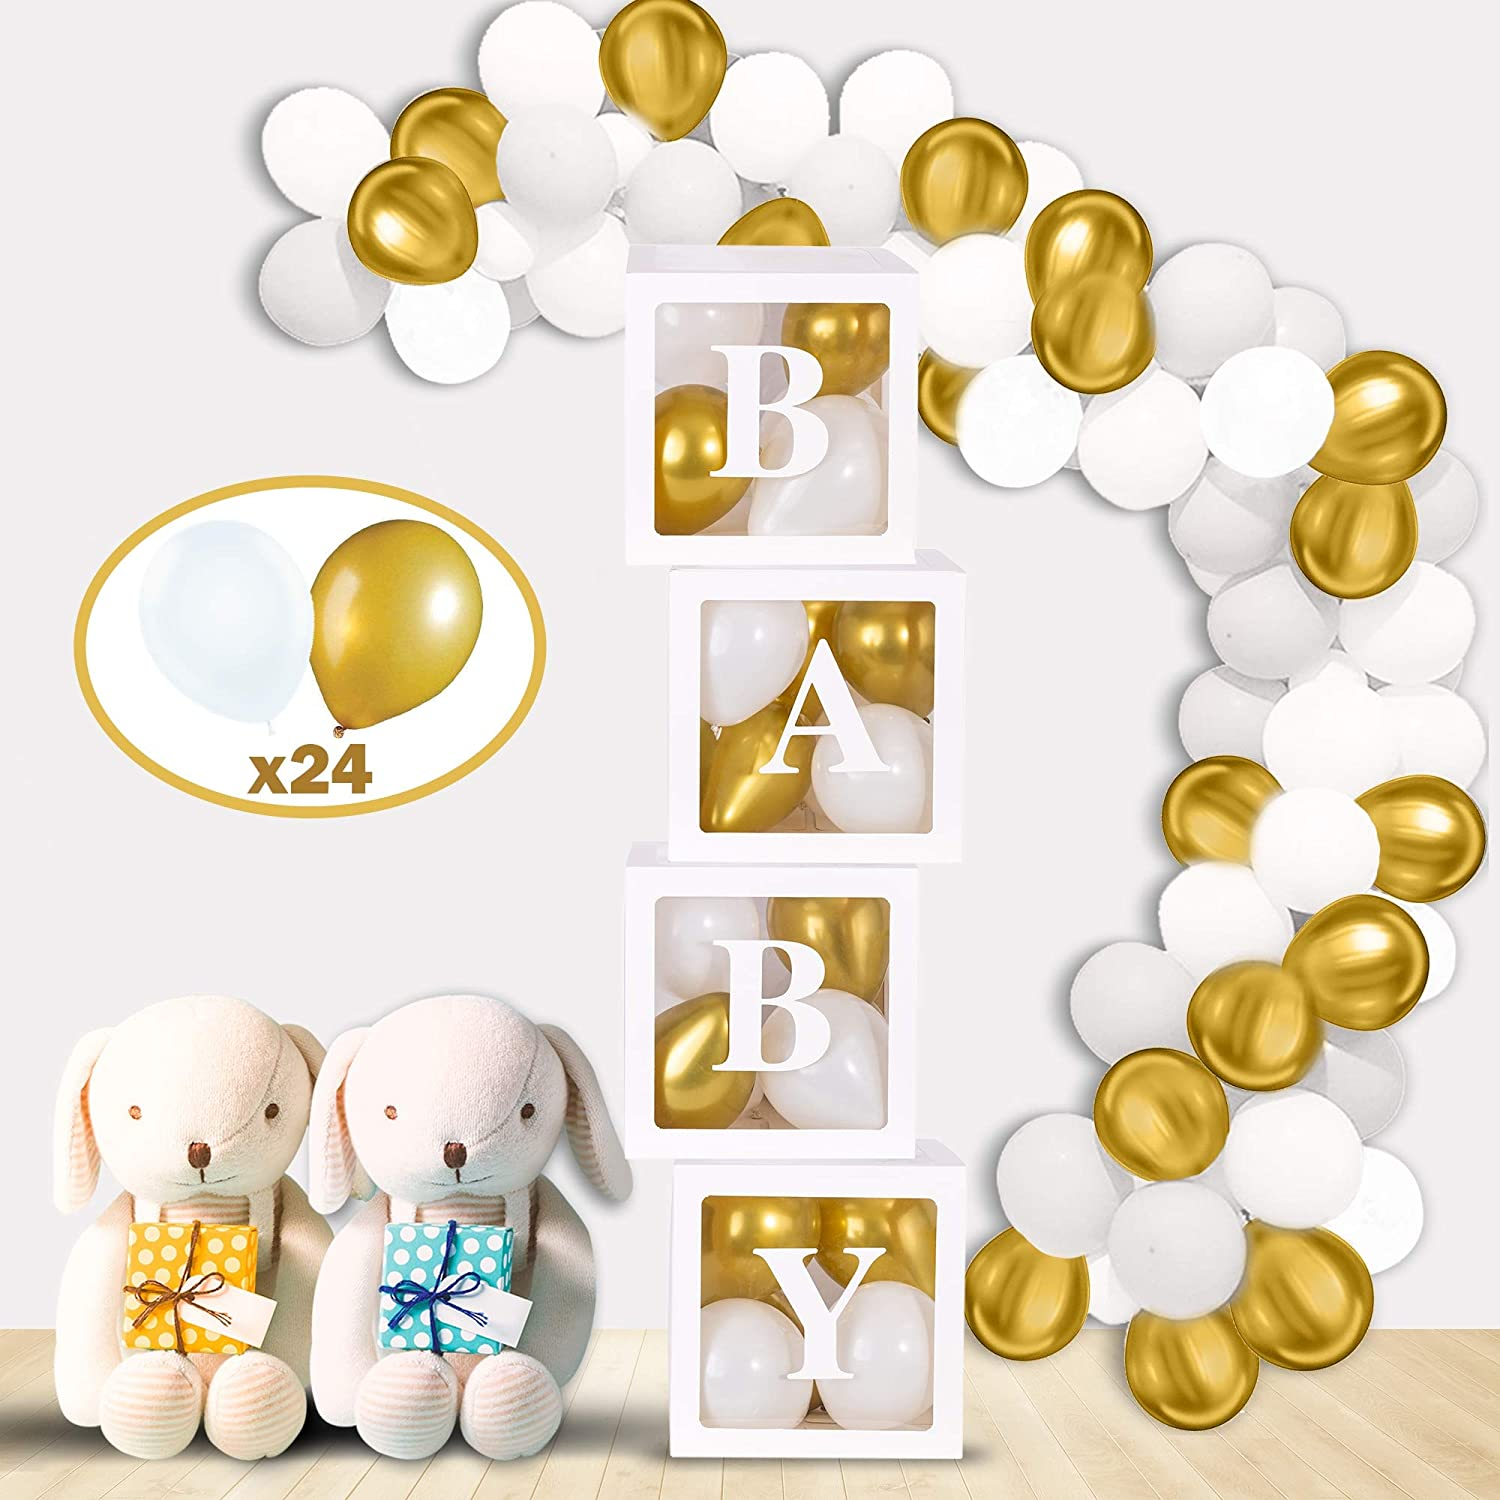 Mint & Elm Baby Shower Decorations for Girls and Boys, Clear Boxes with Balloons, Birthday Decorations, Gender Reveal Box for Balloons, 37 Pieces (Gold)